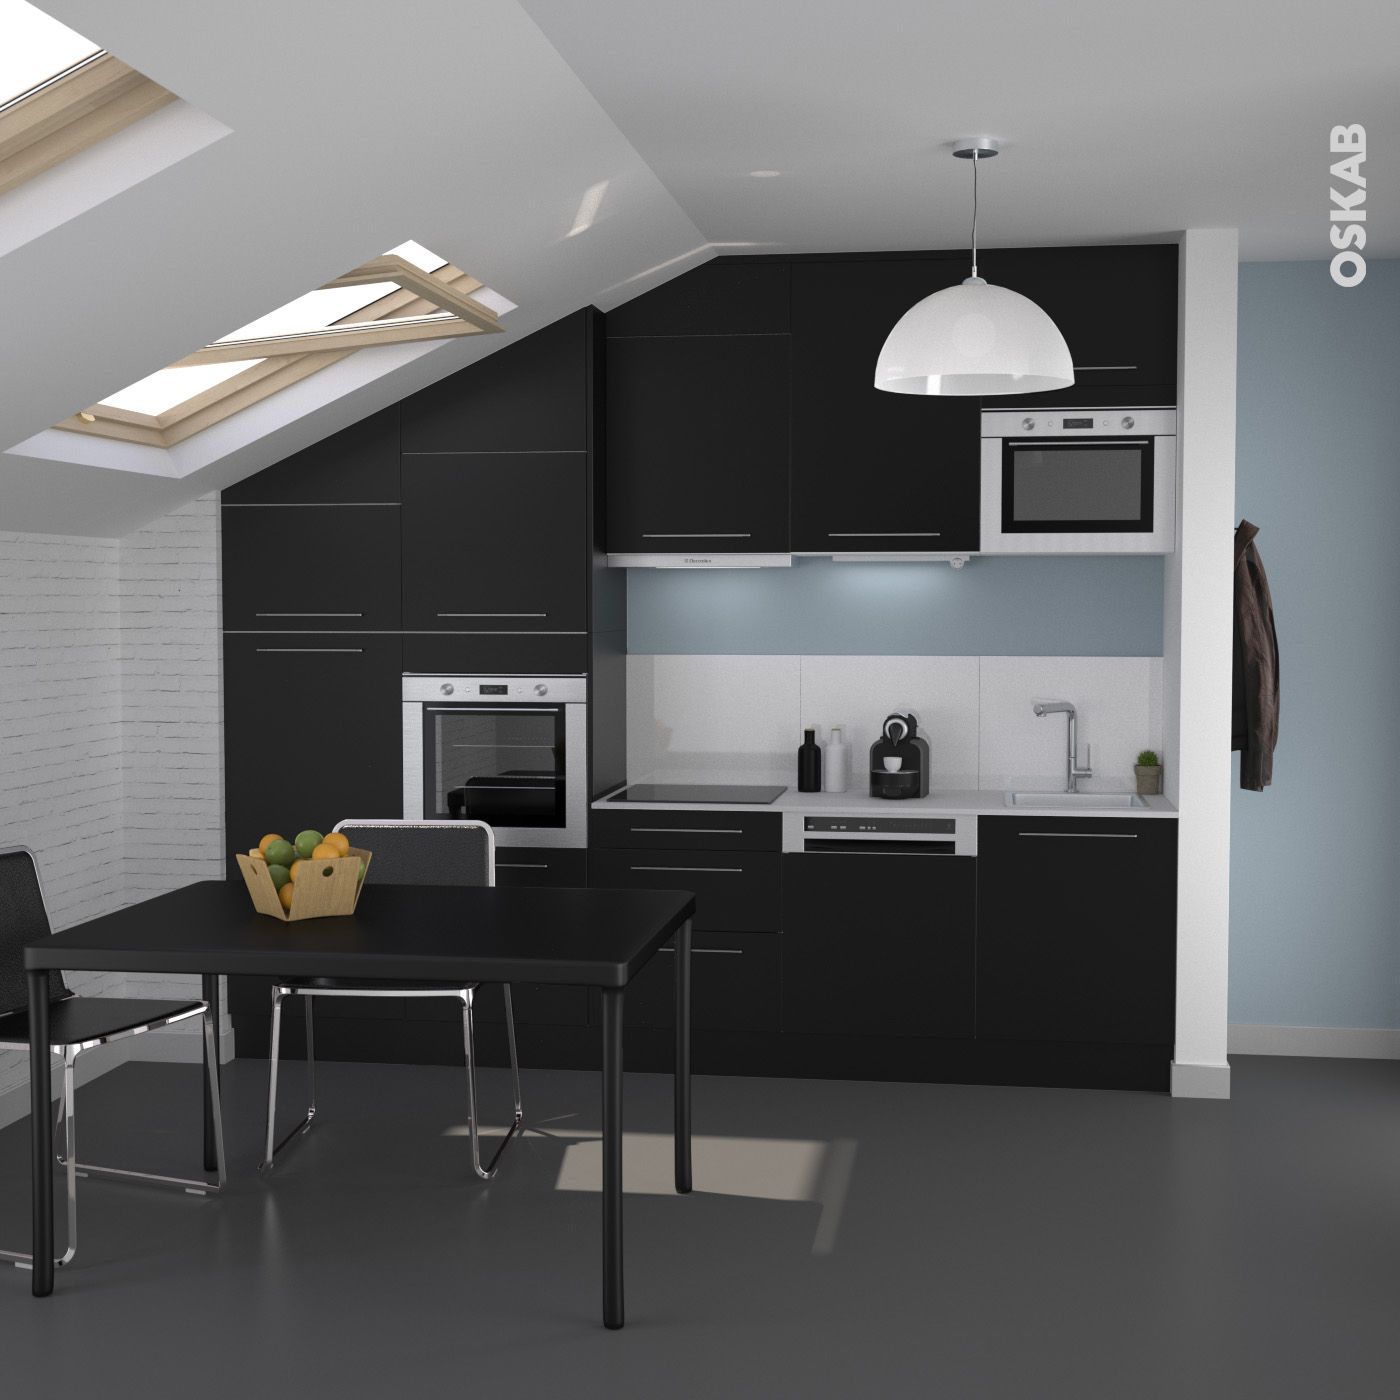 Cuisine contemporaine design noire finition mate for Cuisine contemporaine design